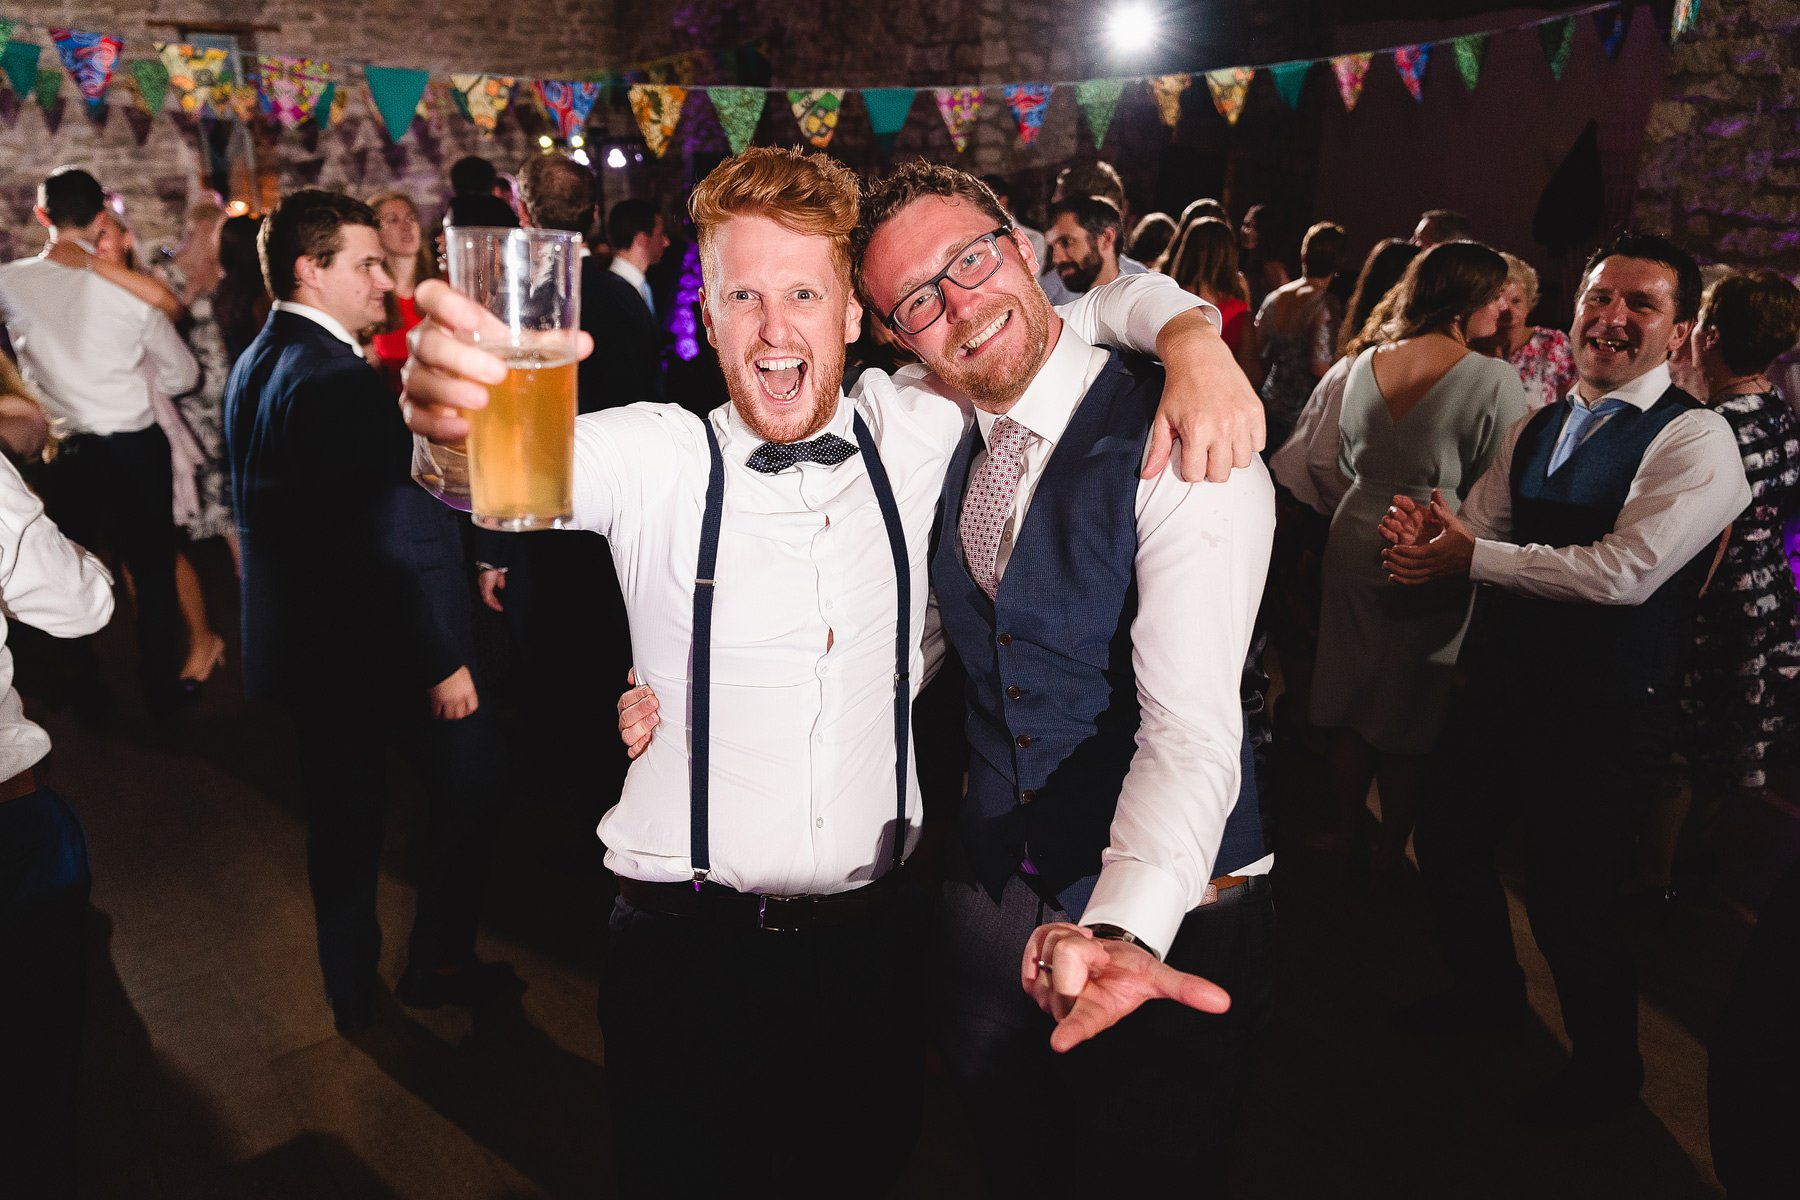 best wedding photographer bristol 2019